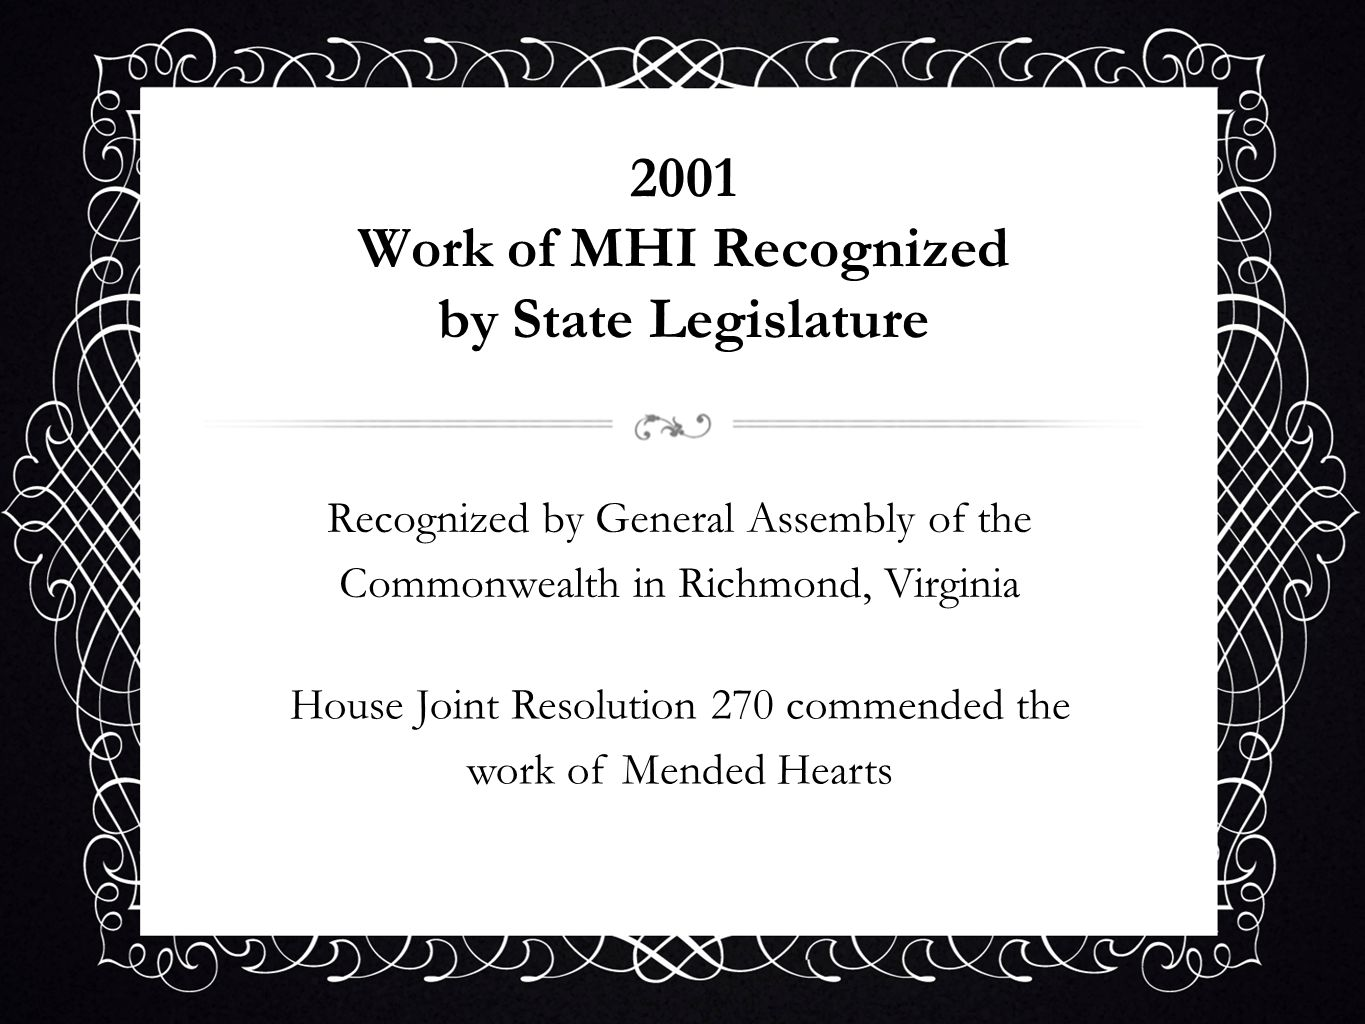 2001 Work of MHI Recognized by State Legislature